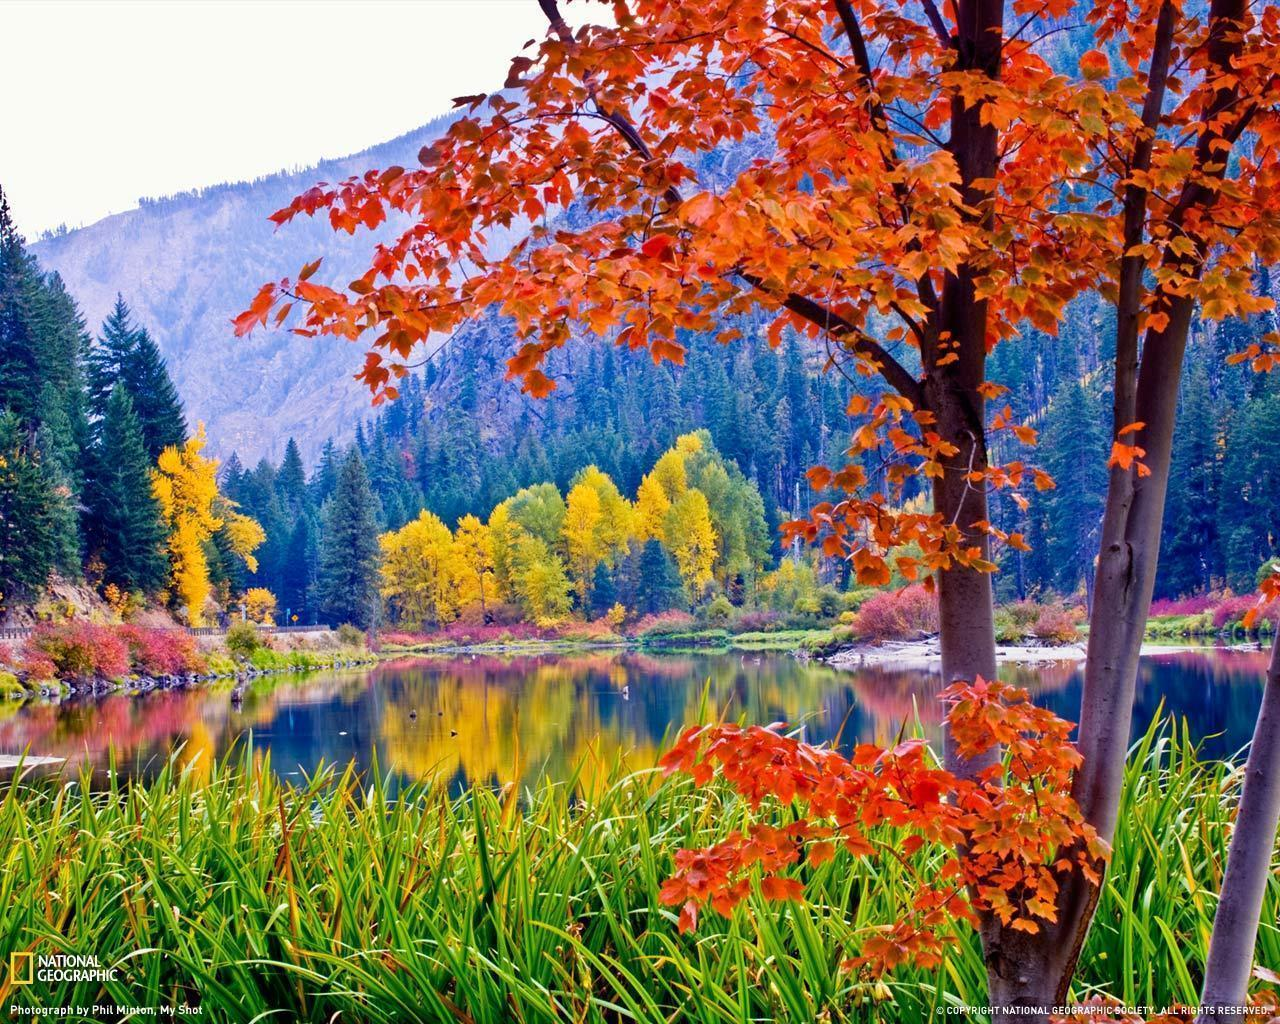 Fall Foliage Desktop Wallpapers Wallpapers Fever 1280x1024PX